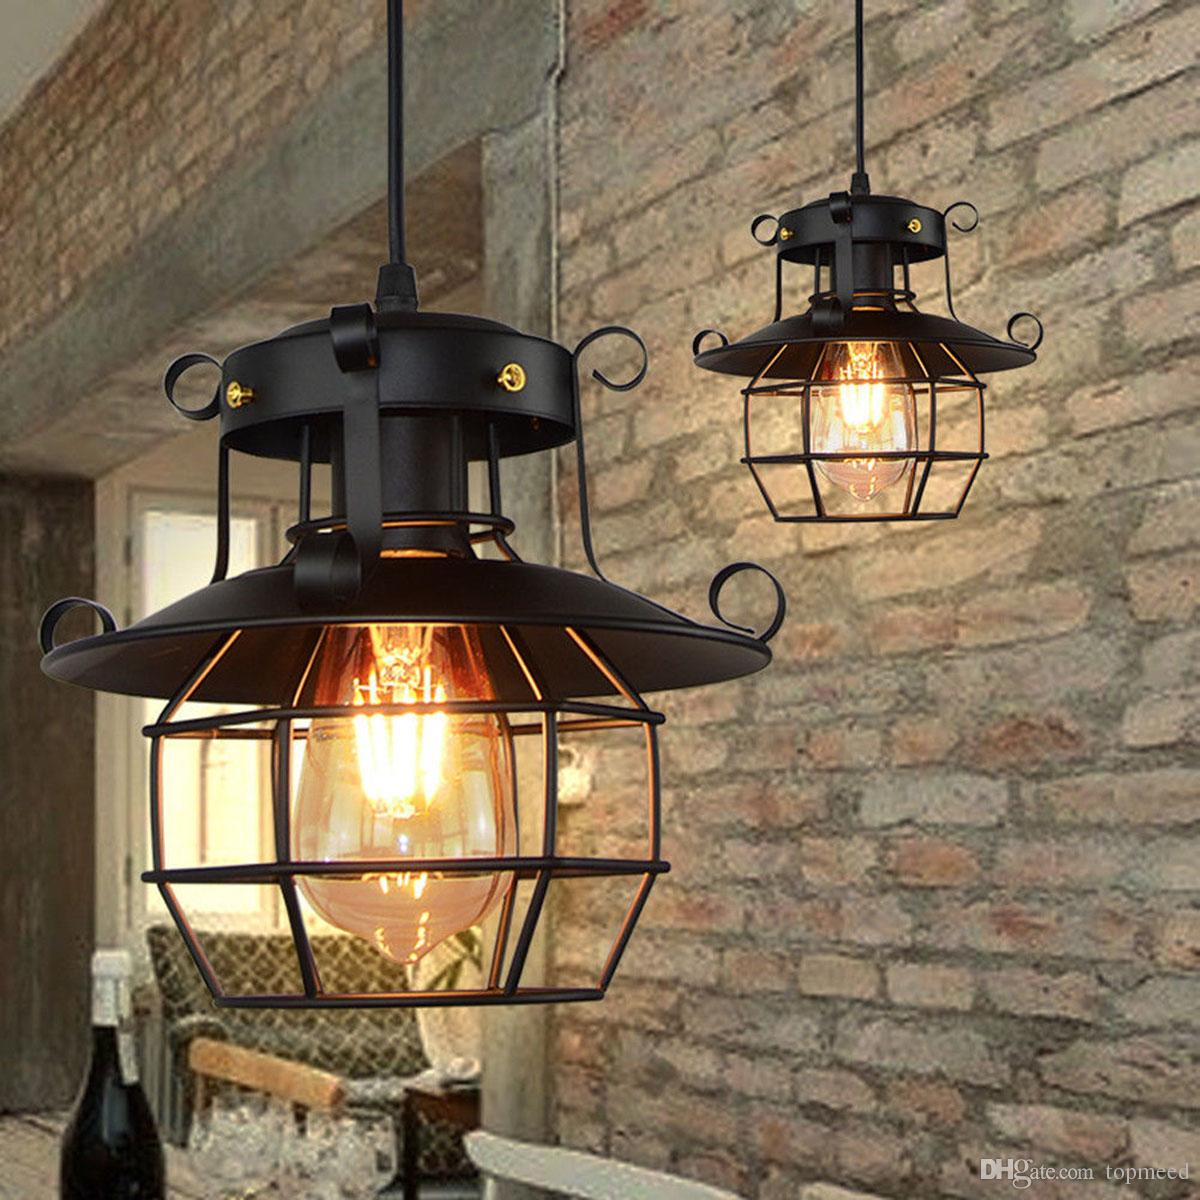 Vintage pendant light metal industrial lamp ceiling light chandelier fixtures cage edison nordic retro loft lamp home decoration low voltage pendant lights